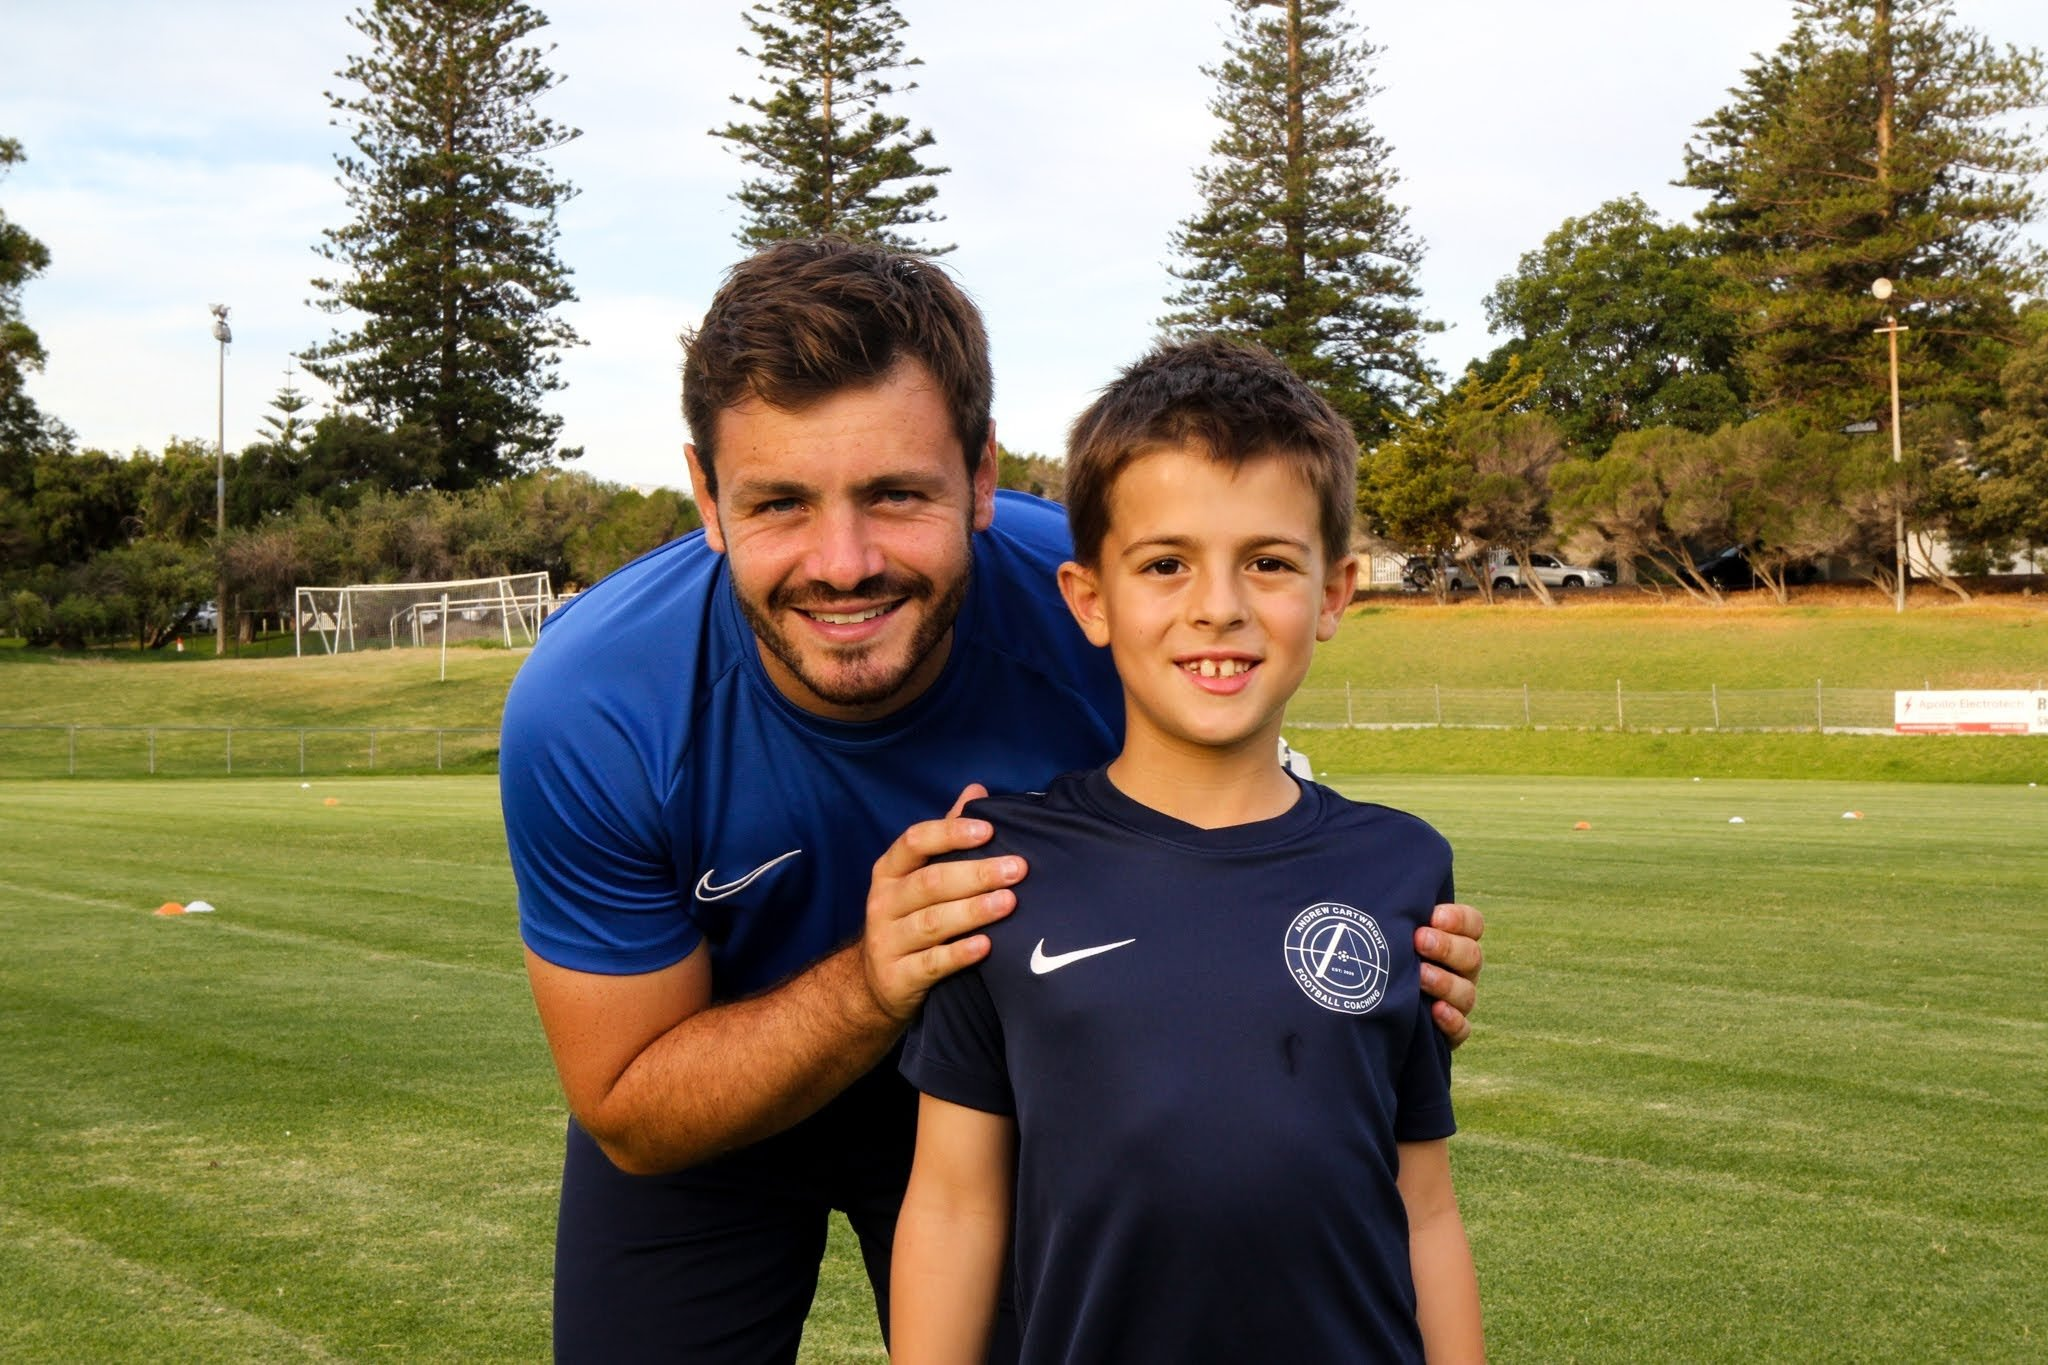 Andrew Cartwright standing next to young boy footballer